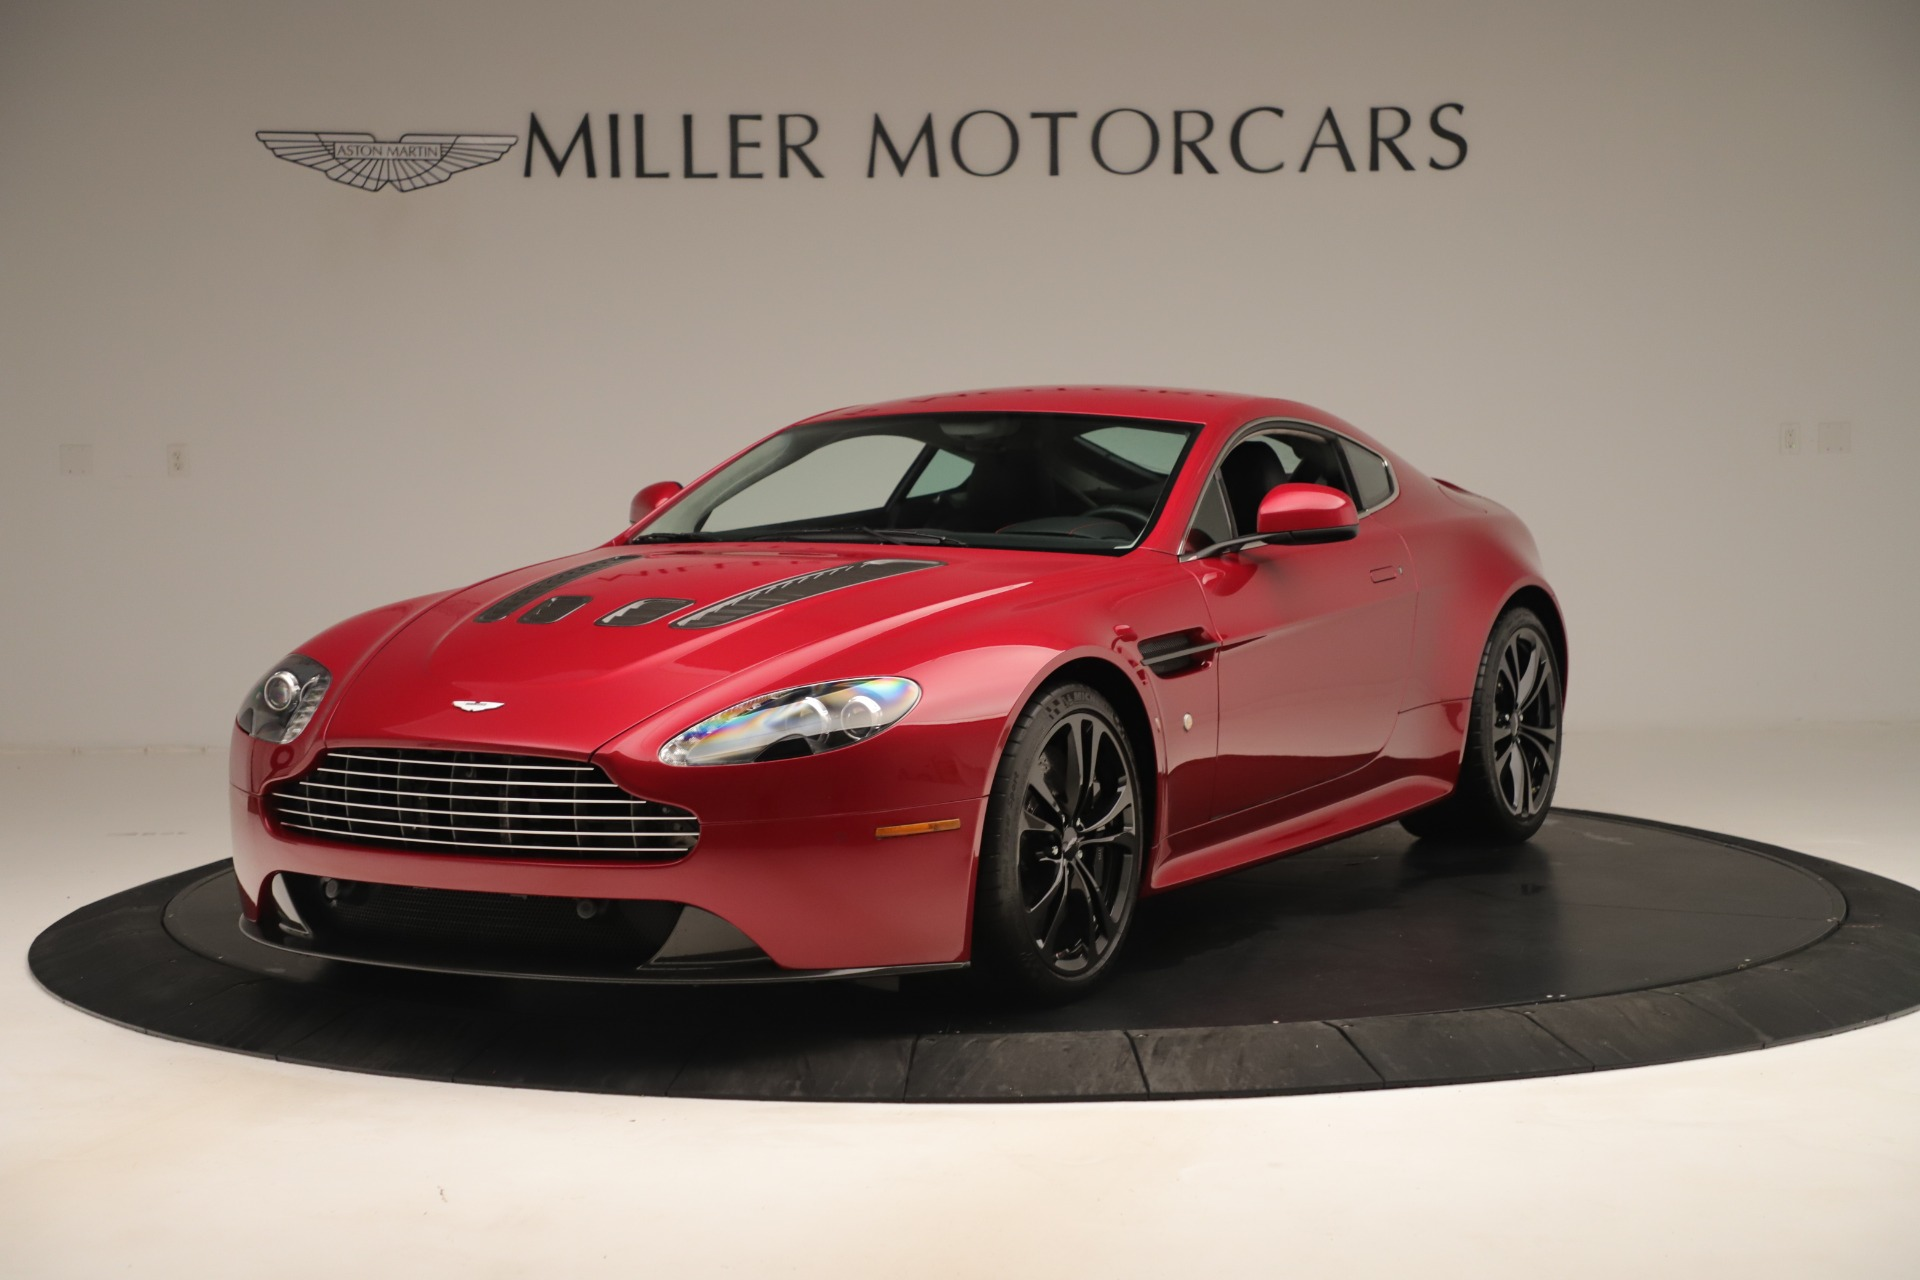 Used 2011 Aston Martin V12 Vantage Coupe for sale Sold at Bentley Greenwich in Greenwich CT 06830 1